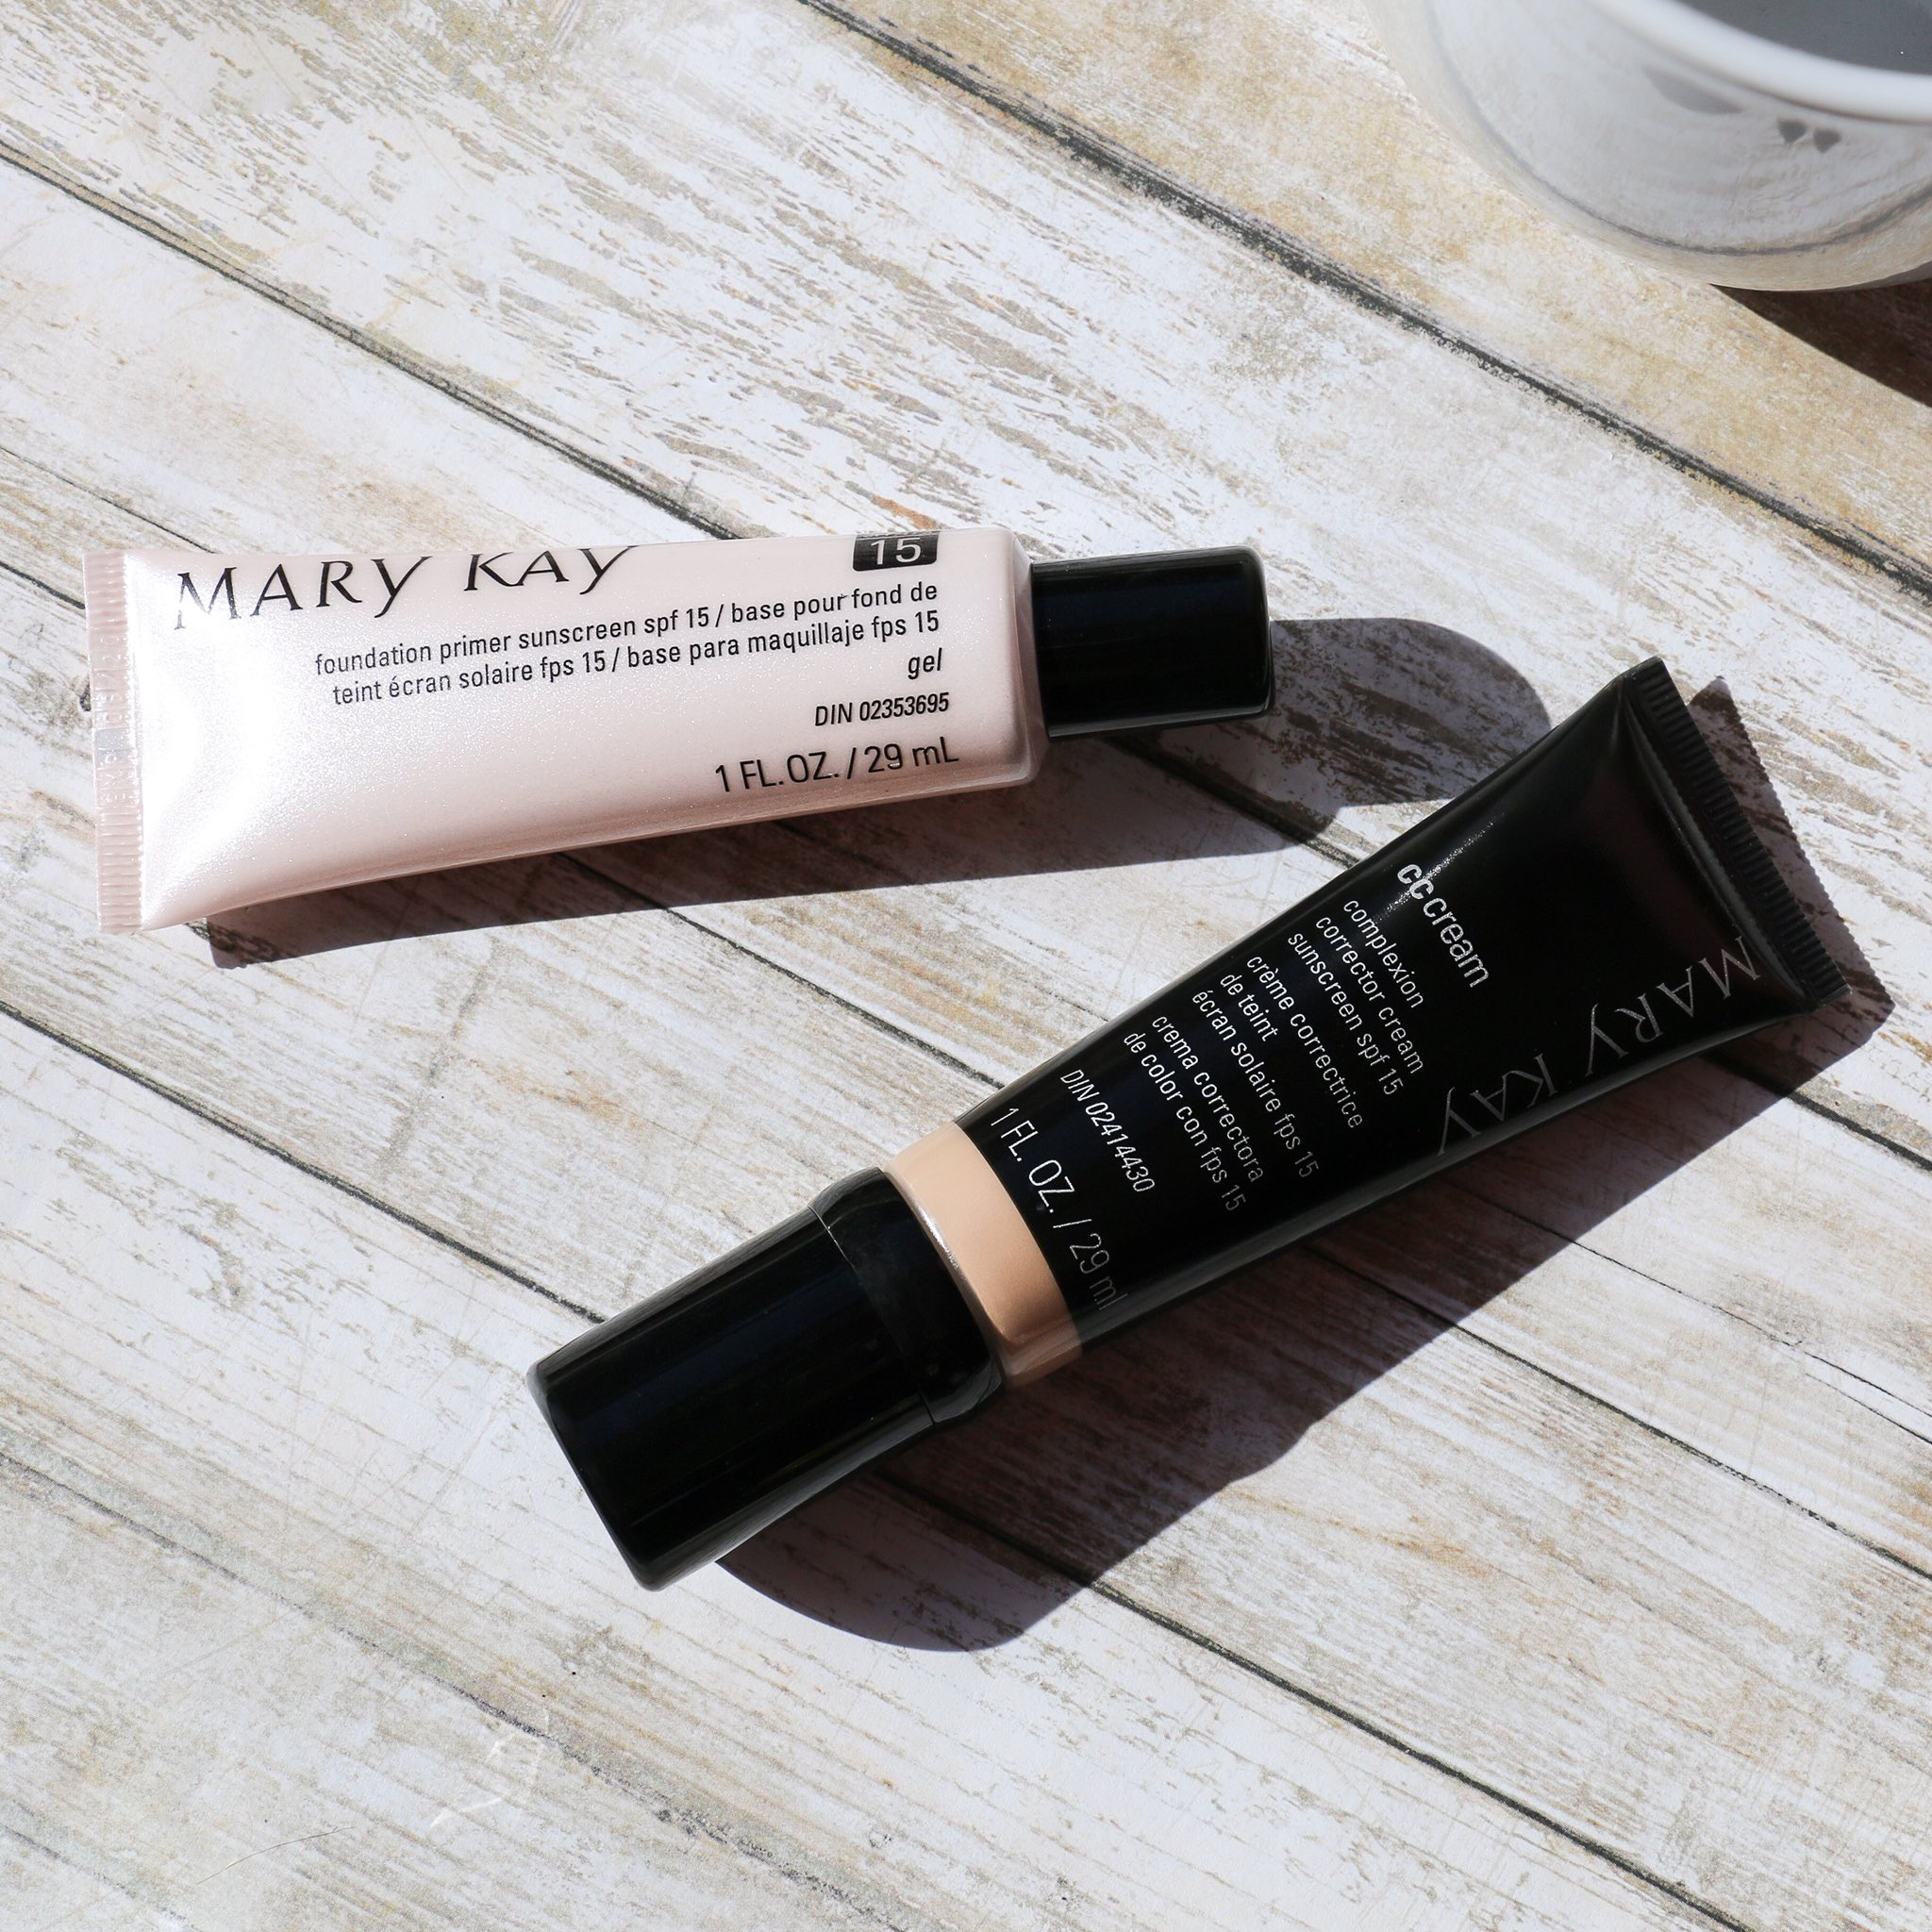 Mary Kay Cosmetics On Twitter Ready Set Glow Our Foundation Primer And Cc Cream Are All You Need For Natural Glowing Skin This Weekend Hit Like If You Agree Glowingskin Marykay